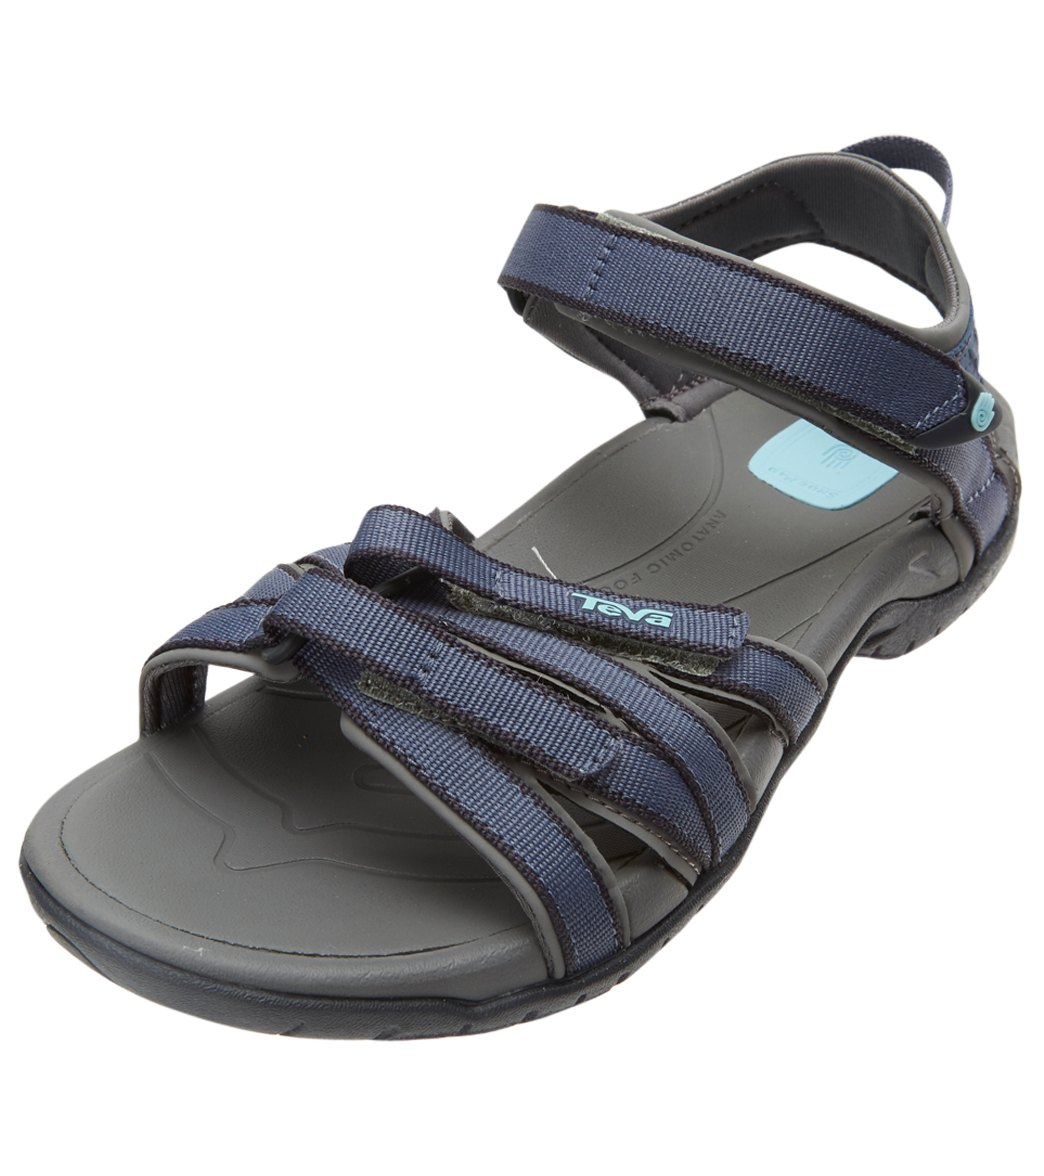 6c97f40e8ce5d Teva Women s Tirra Sandal at SwimOutlet.com - Free Shipping